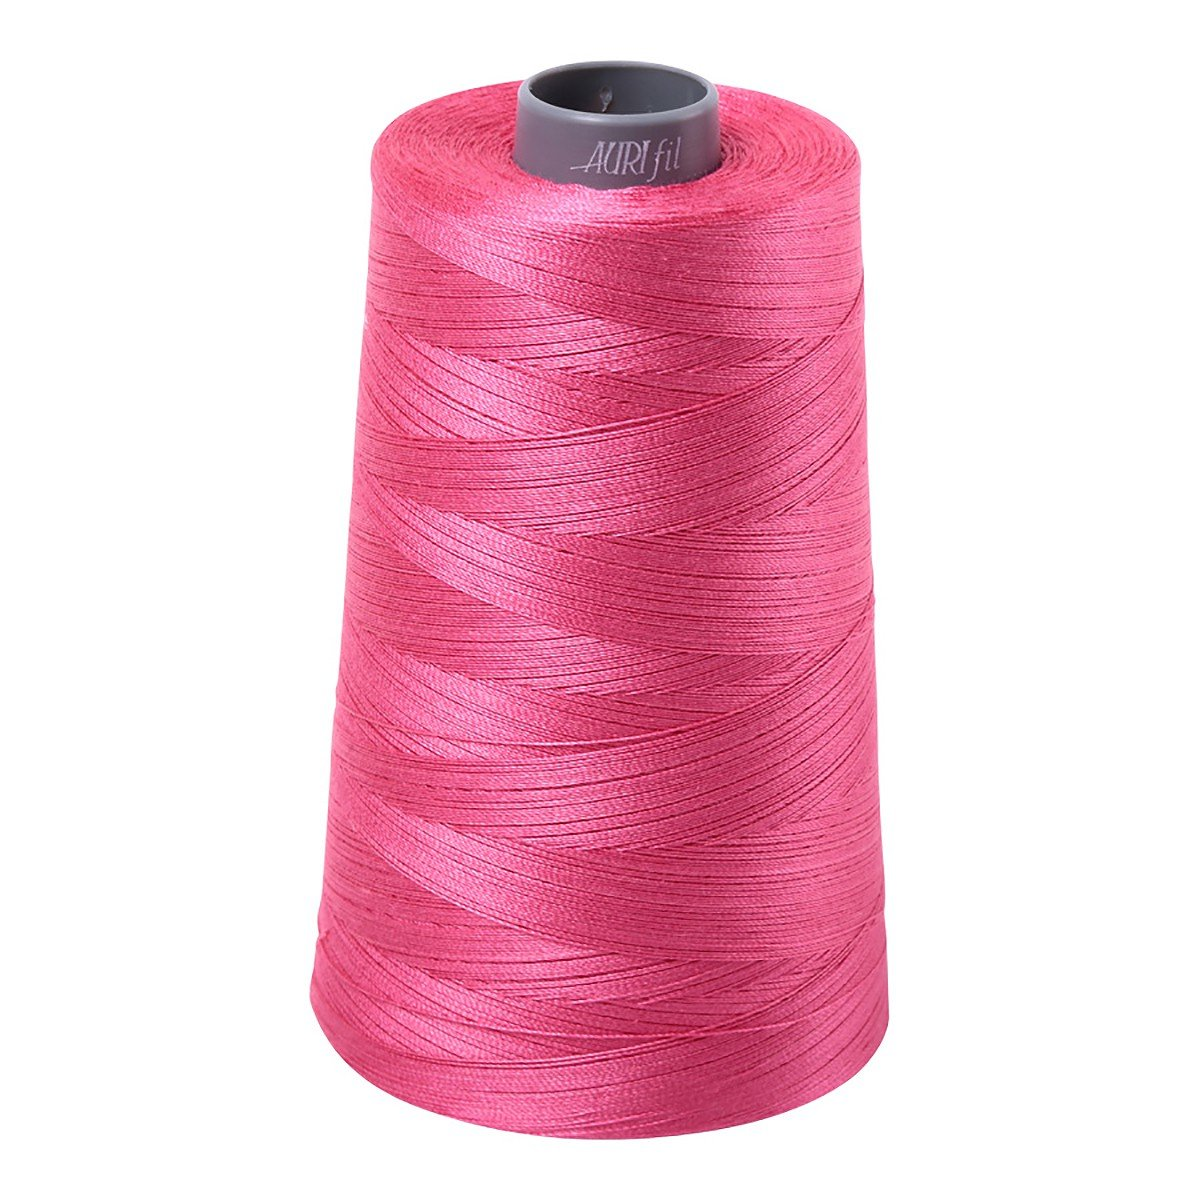 Mako (Cotton) Embroidery Thread 28wt 3609yds Blossom Pink